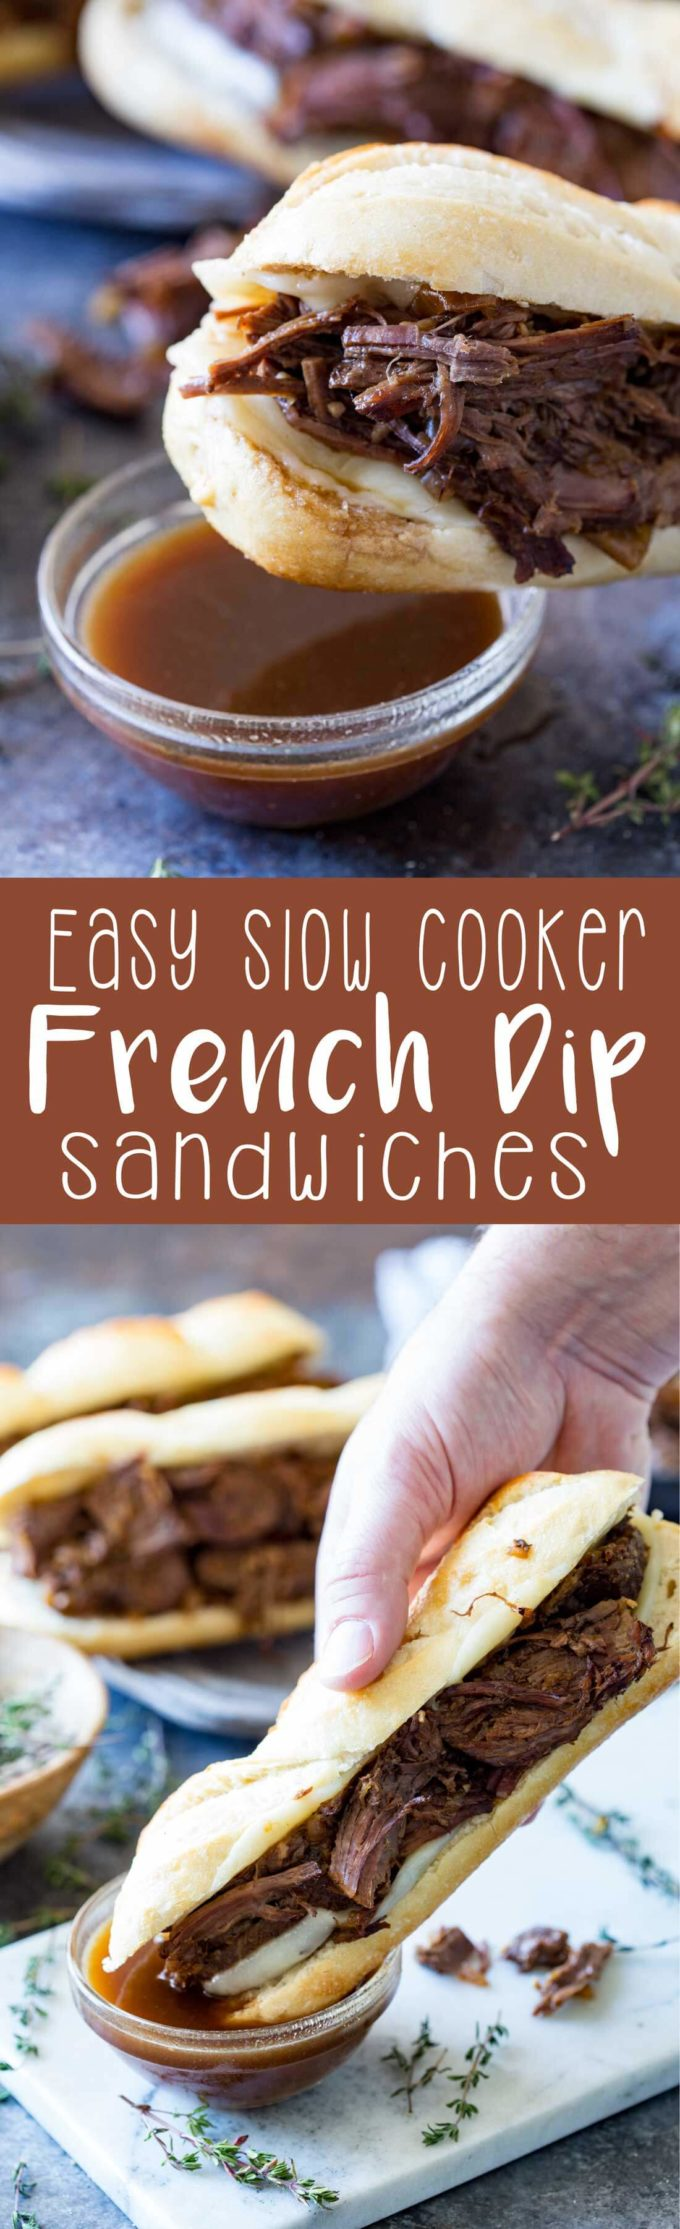 French dip sandwich prepared in a slow cooker for the most tender, most flavorful, most delicious sandwich you have ever eaten.